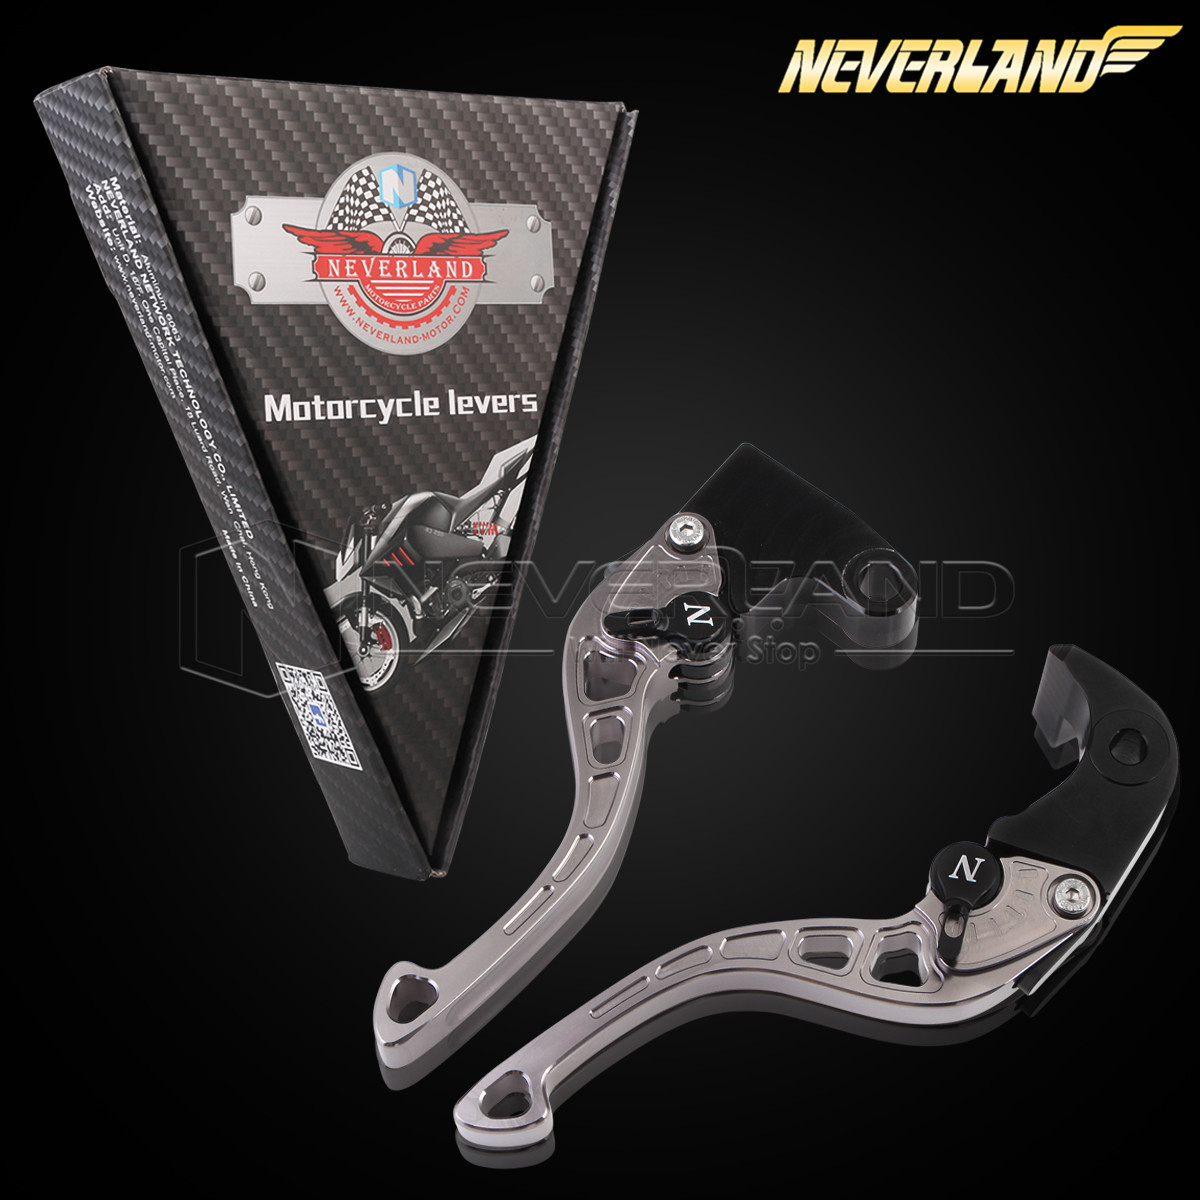 CNC Short Motorbike Brakes Adjustable Clutch Brakes Levers for YAMAHA FZ1 FAZER 2006-2013 MT-07/FZ-07 MT-09/FZ-09/SR 14-2015 D25 motorcycle adjustable cnc aluminum brakes clutch levers set motorbike brake for yamaha fz1 fazer 2006 2013 xj6 diversion 09 15